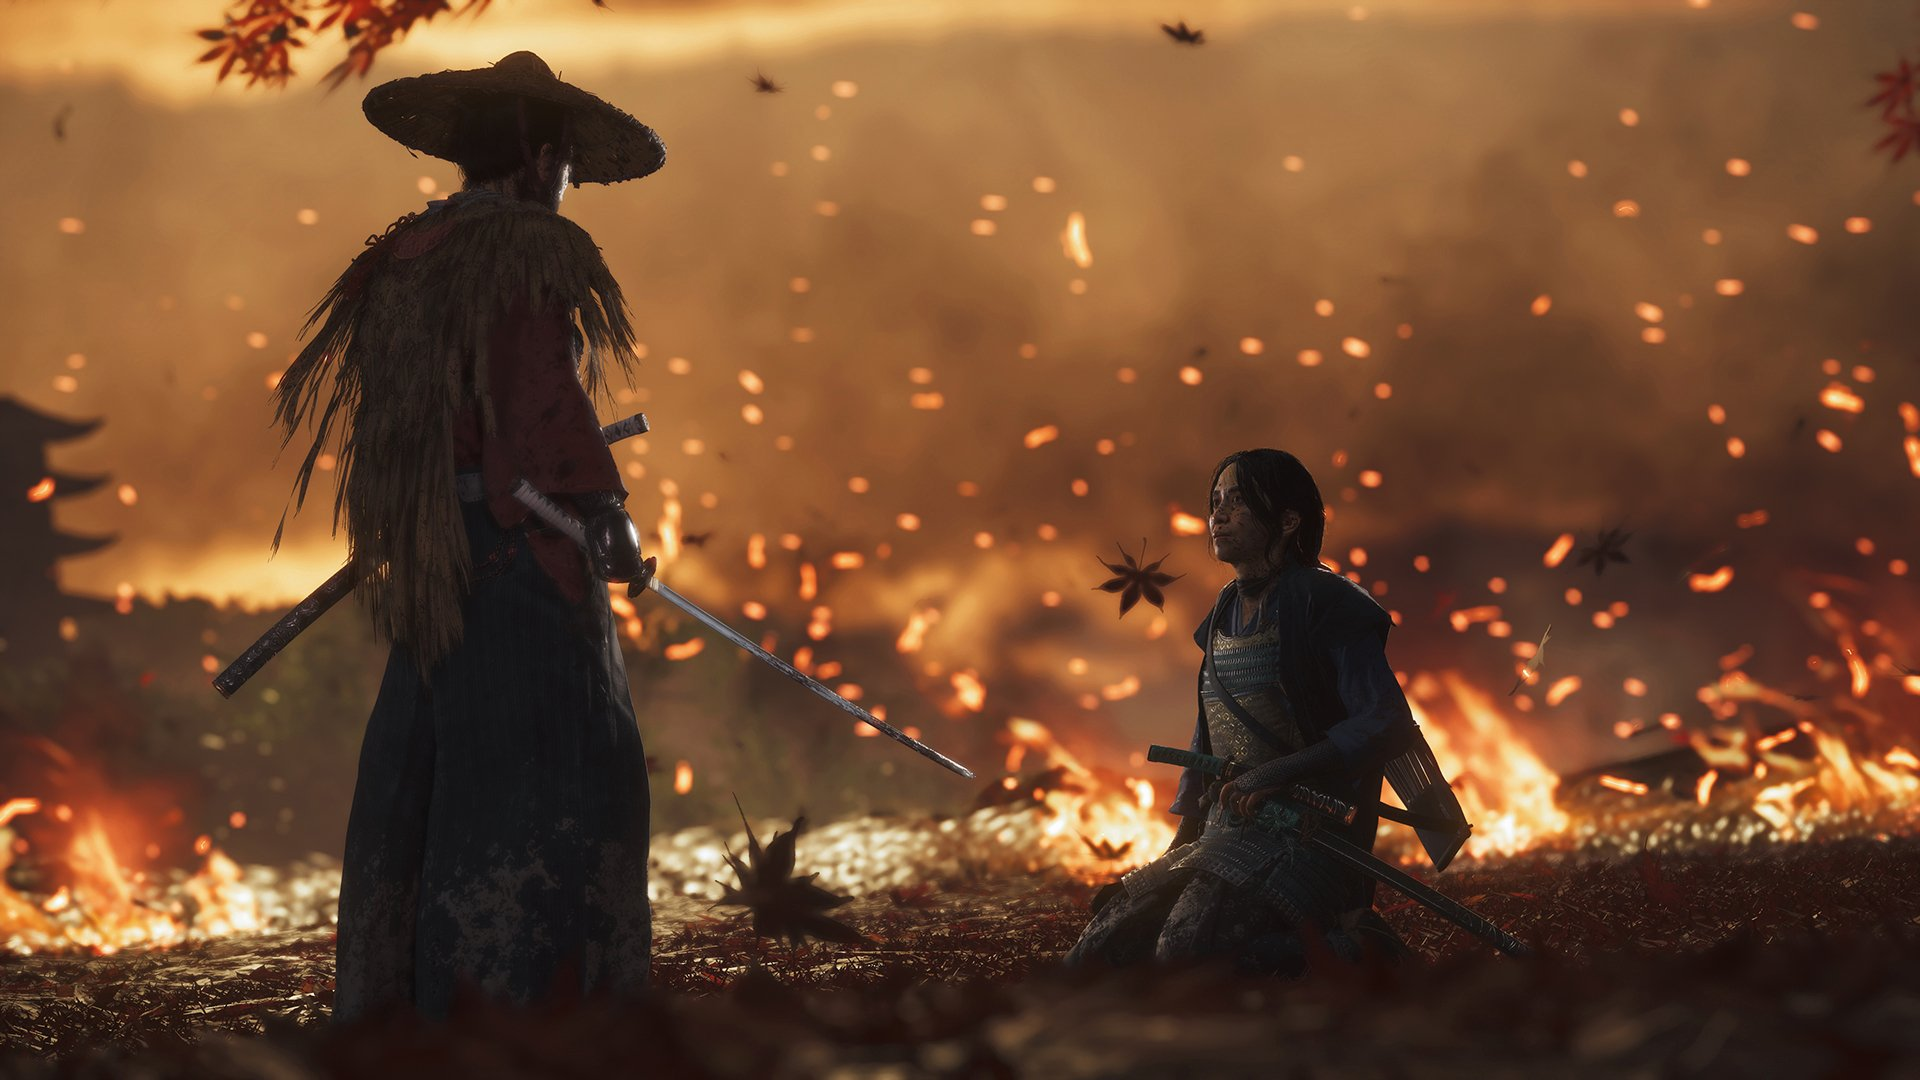 Sucker Punch Says They'll Have A New Patch For Ghost Of Tsushima 'Soon'